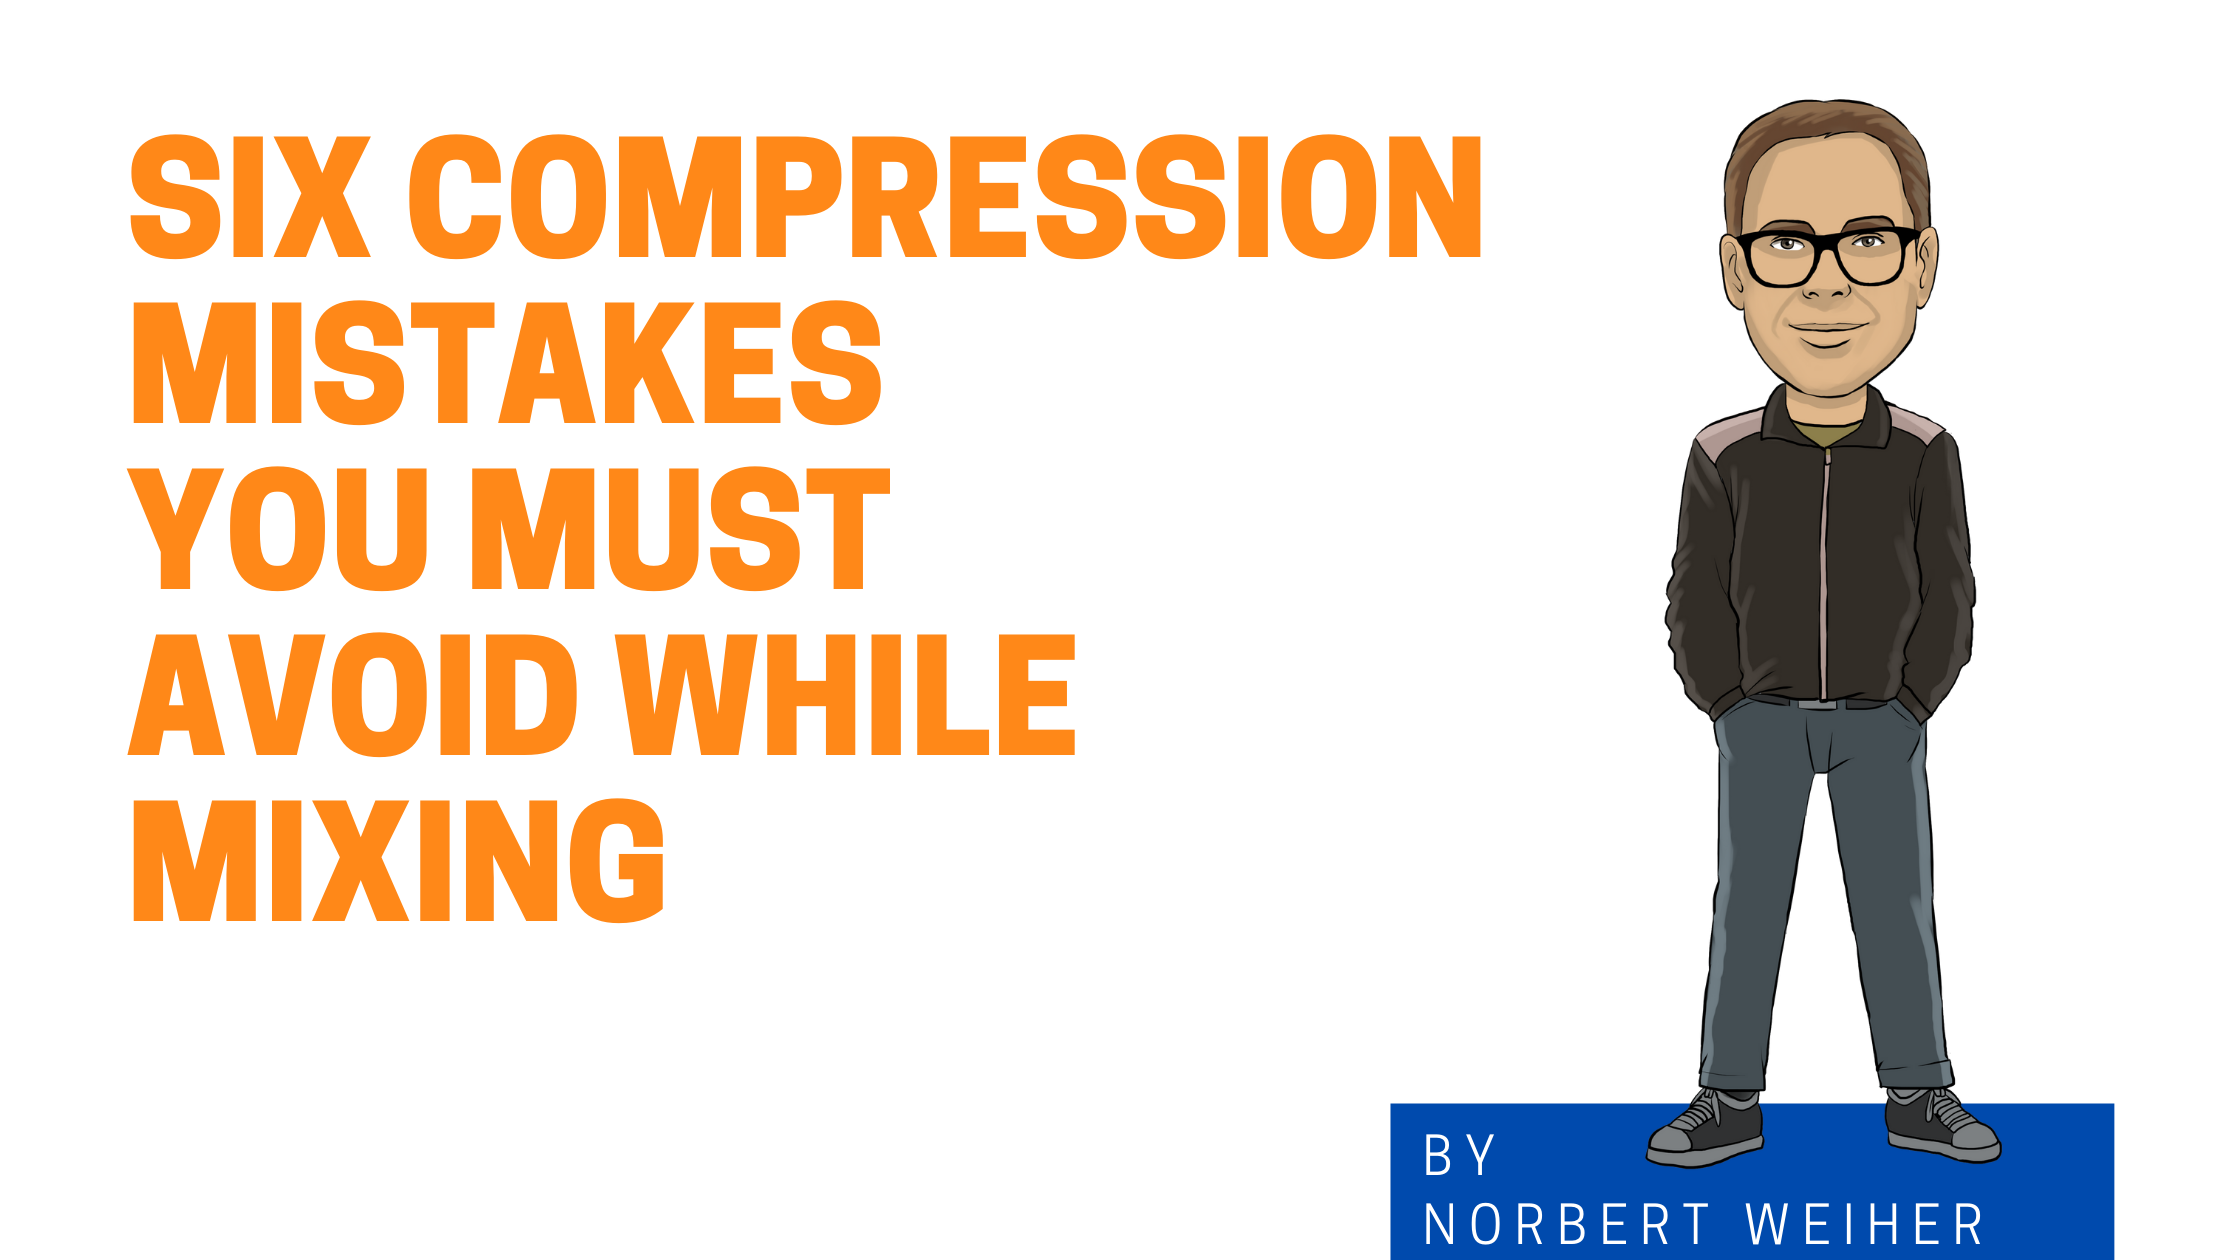 Six compression mistakes you must avoid while mixing